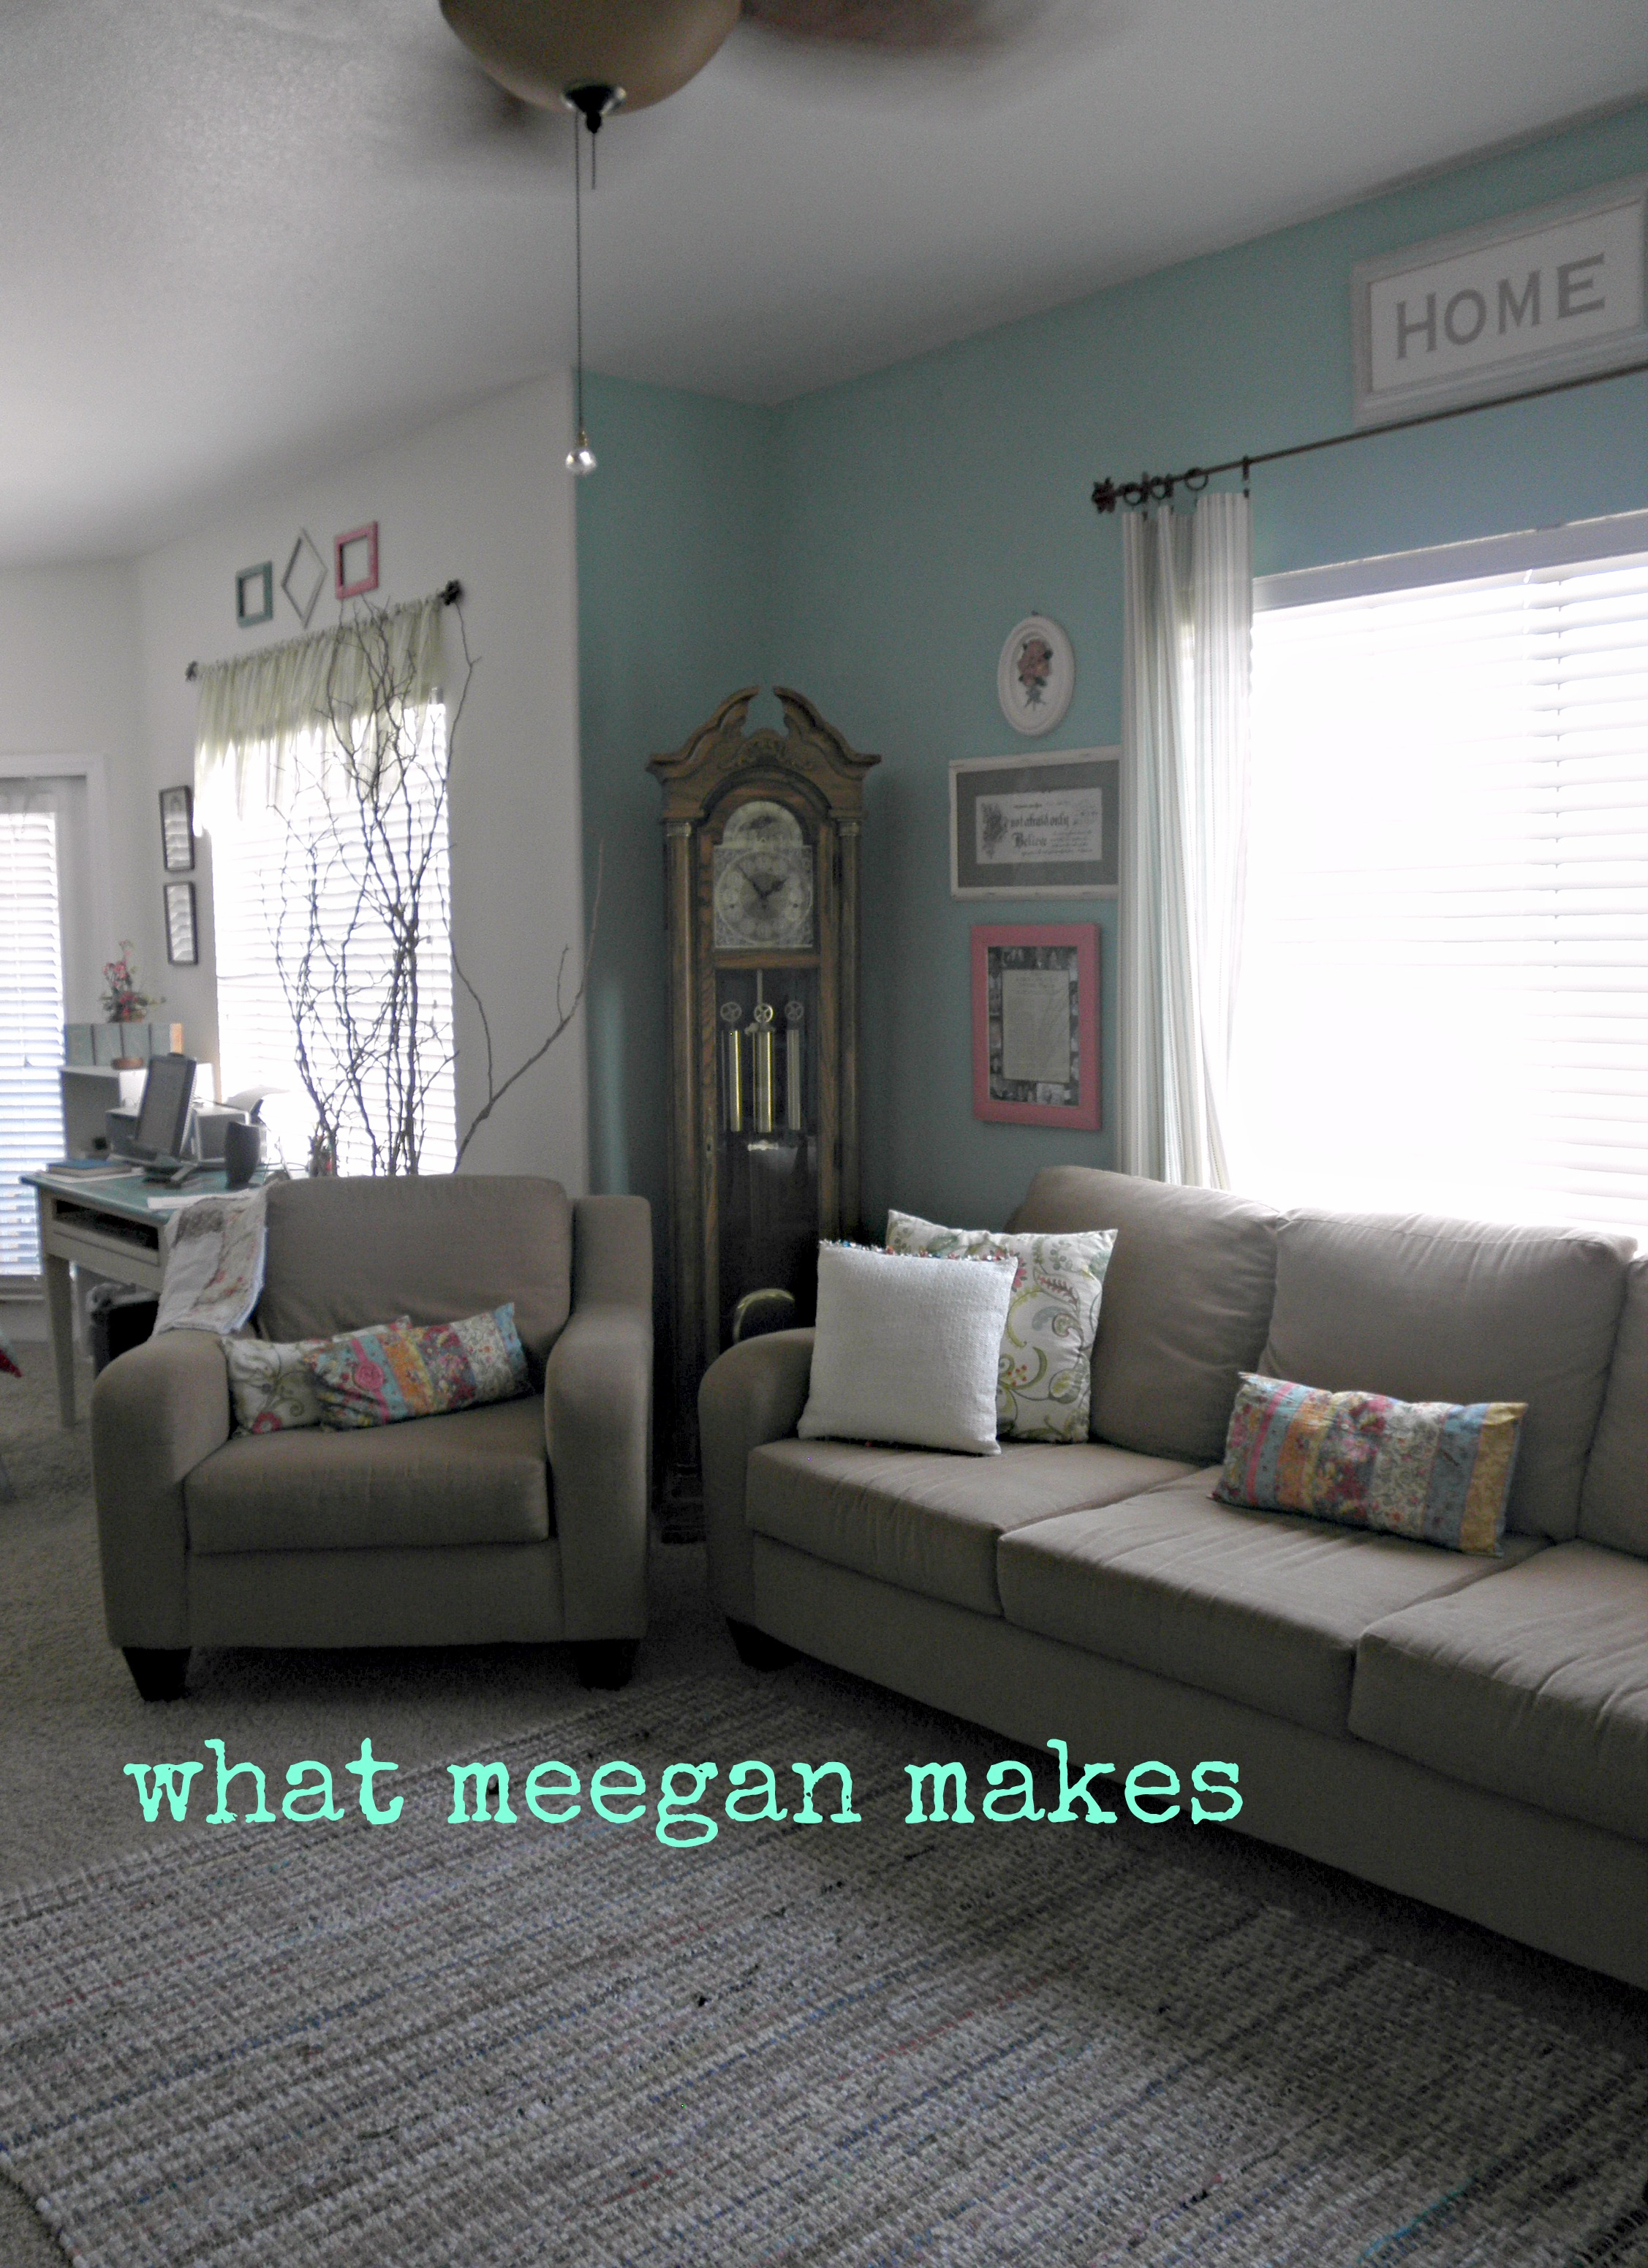 The Best of What Meegan Makes Finale